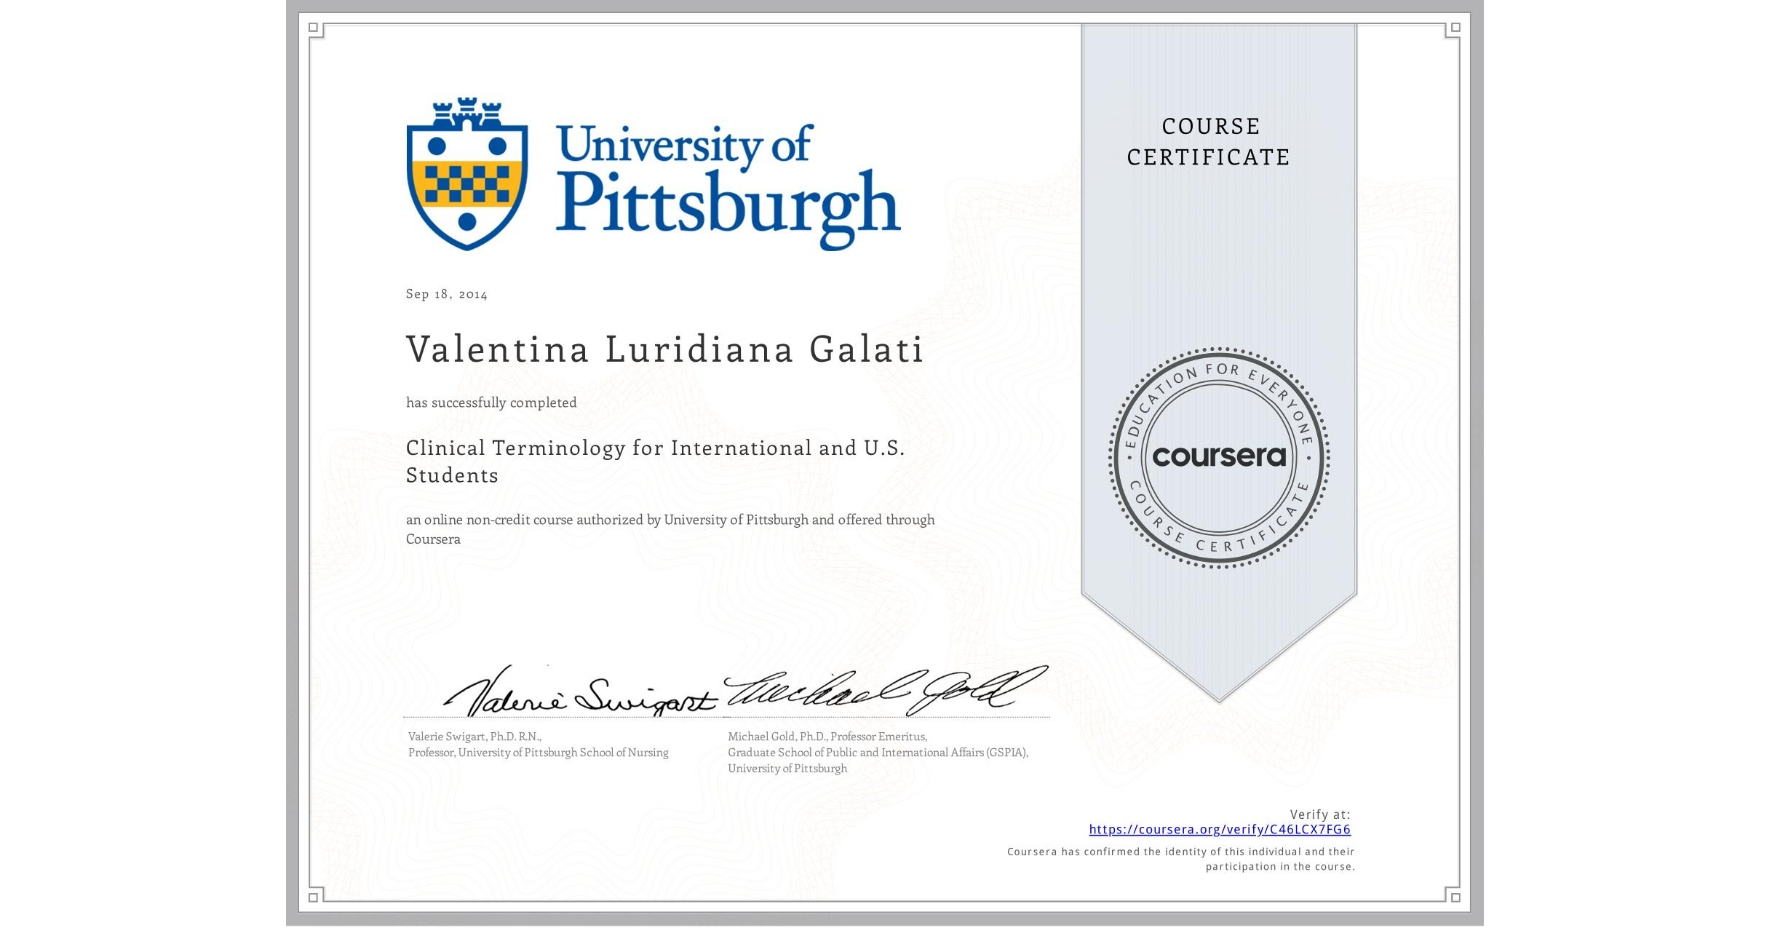 View certificate for Valentina Luridiana Galati, Clinical Terminology for International and U.S. Students, an online non-credit course authorized by University of Pittsburgh and offered through Coursera